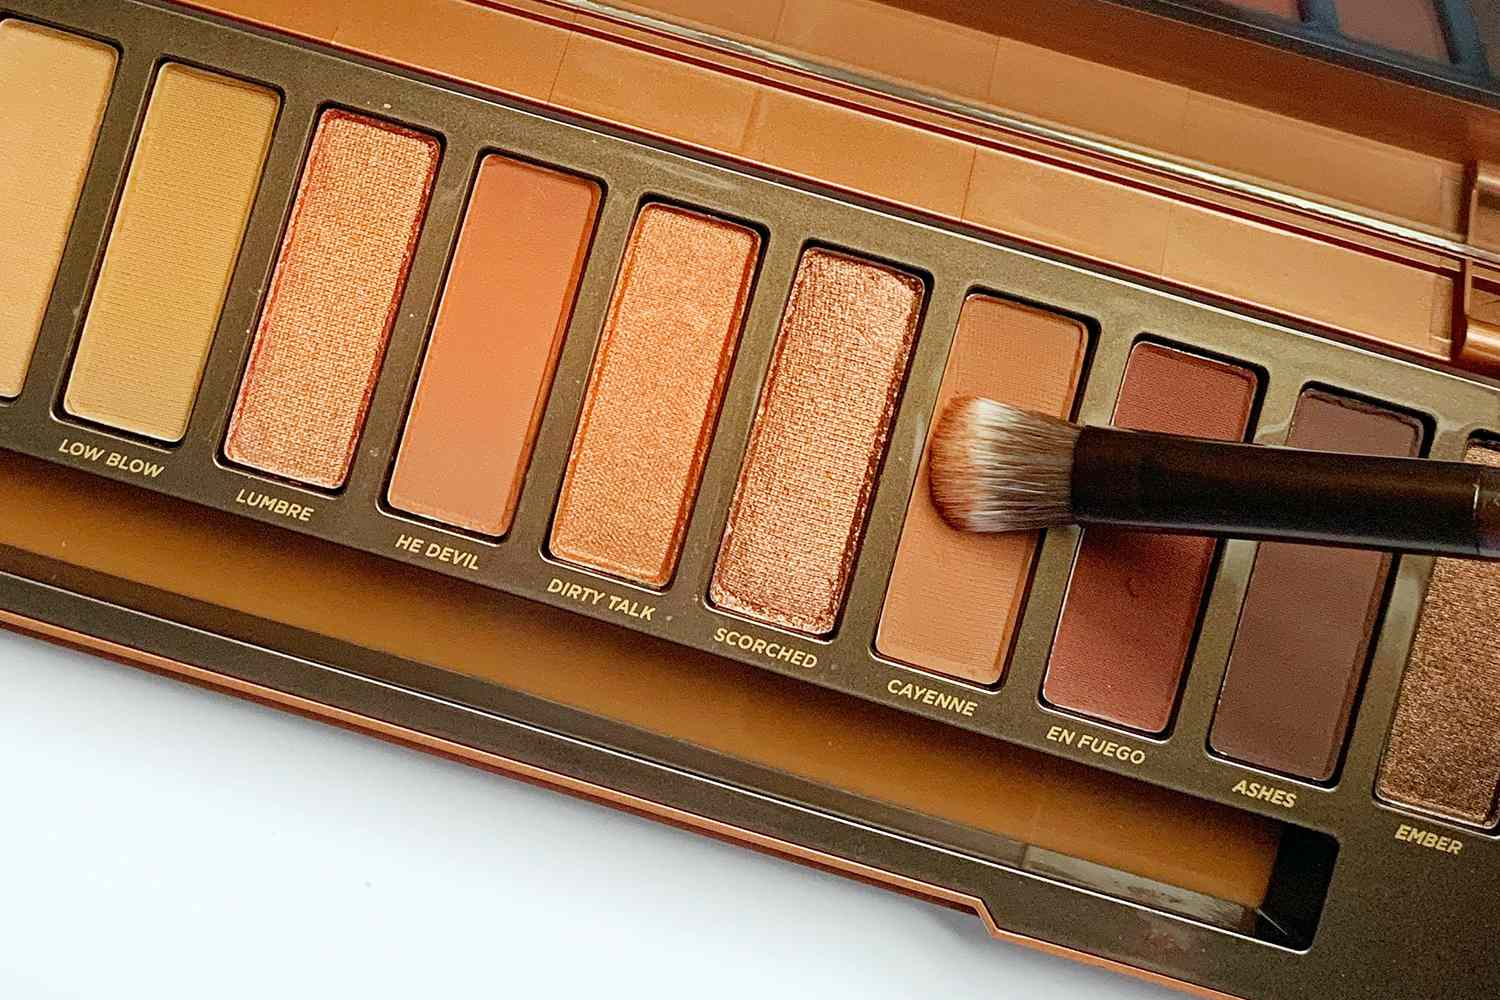 Urban Decay Naked Heat Review And Swatches